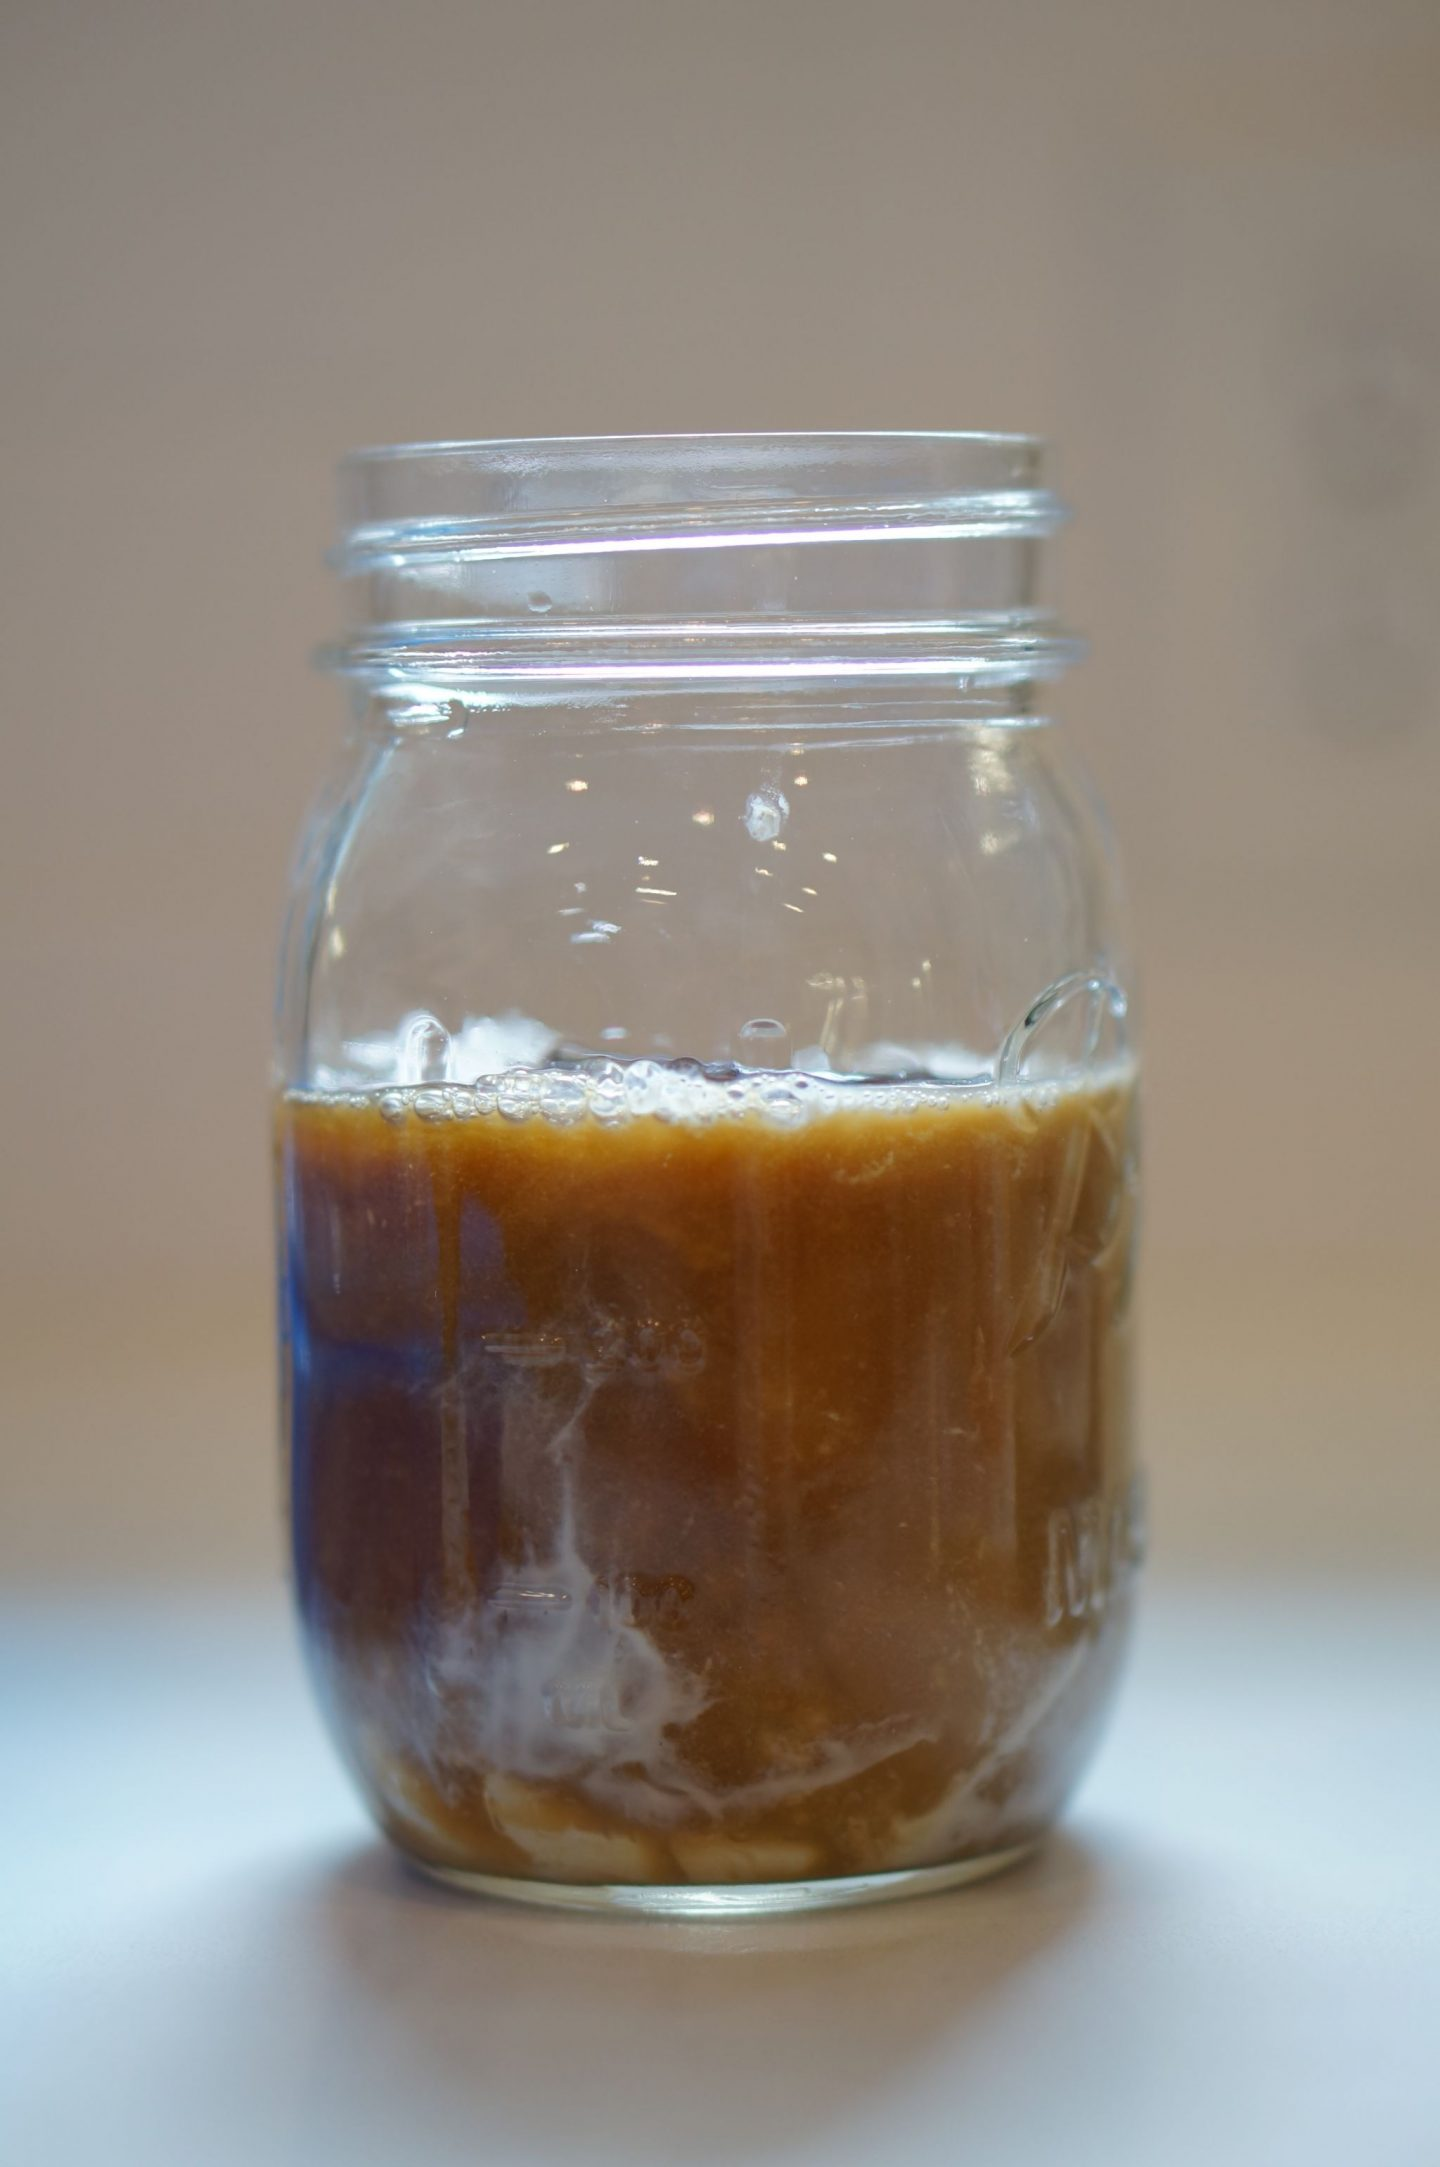 North Carolina blogger Rebecca Lately is sharing her favorite way to mix up a Chameleon Cold Brew coffee at home, perfect for a hot summer afternoon!